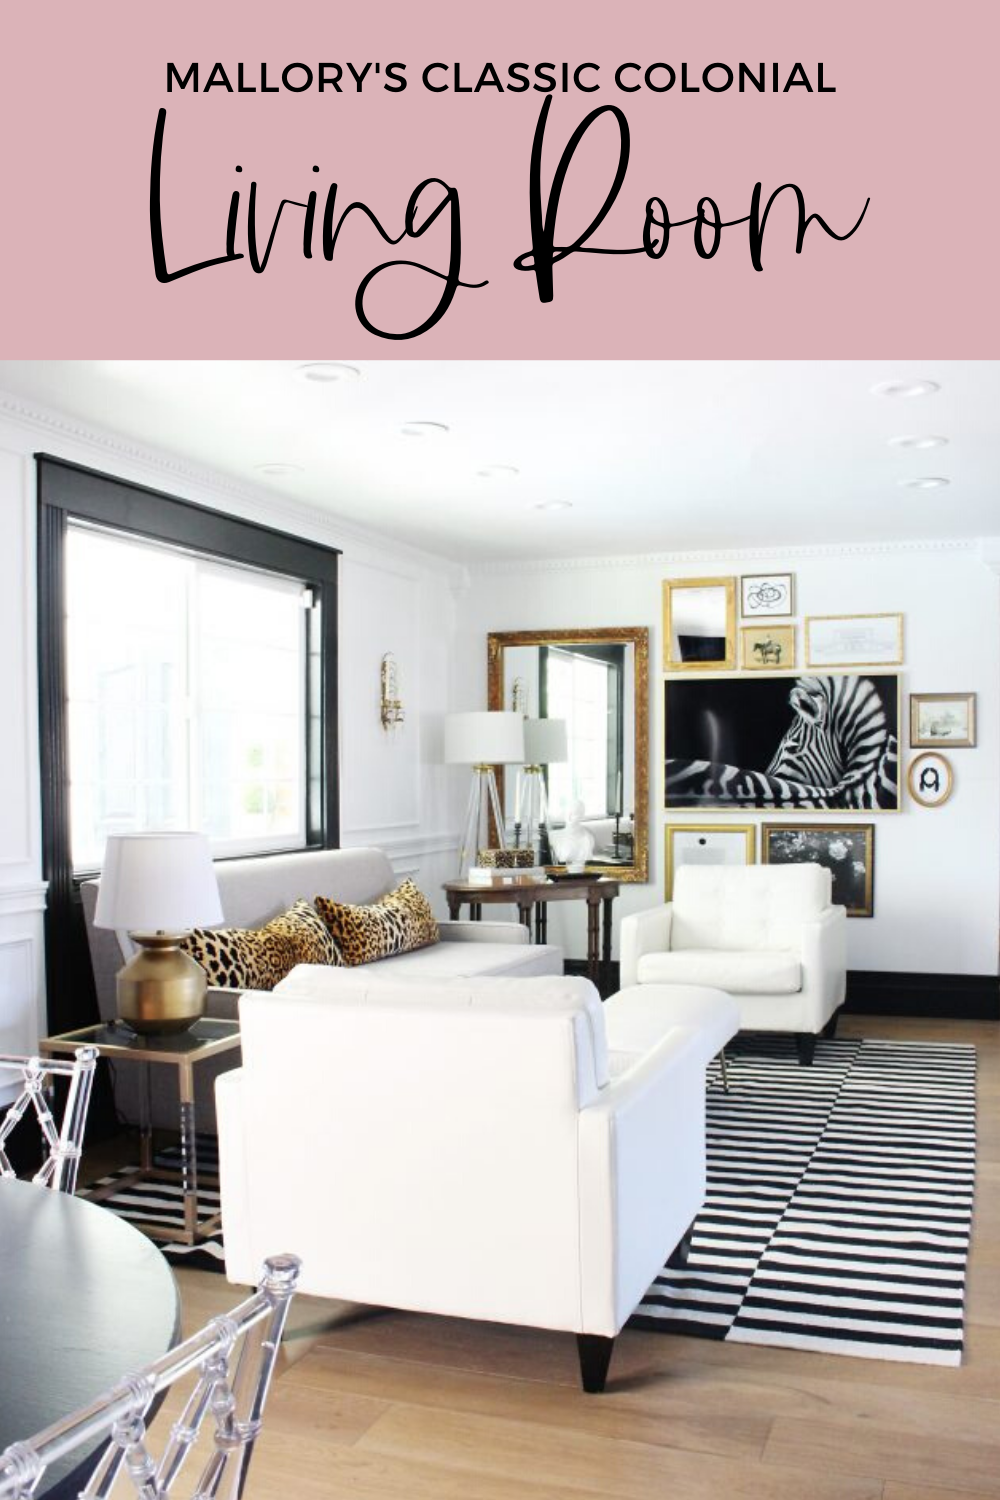 Mallory's Classic Colonial: Living Room Reveal